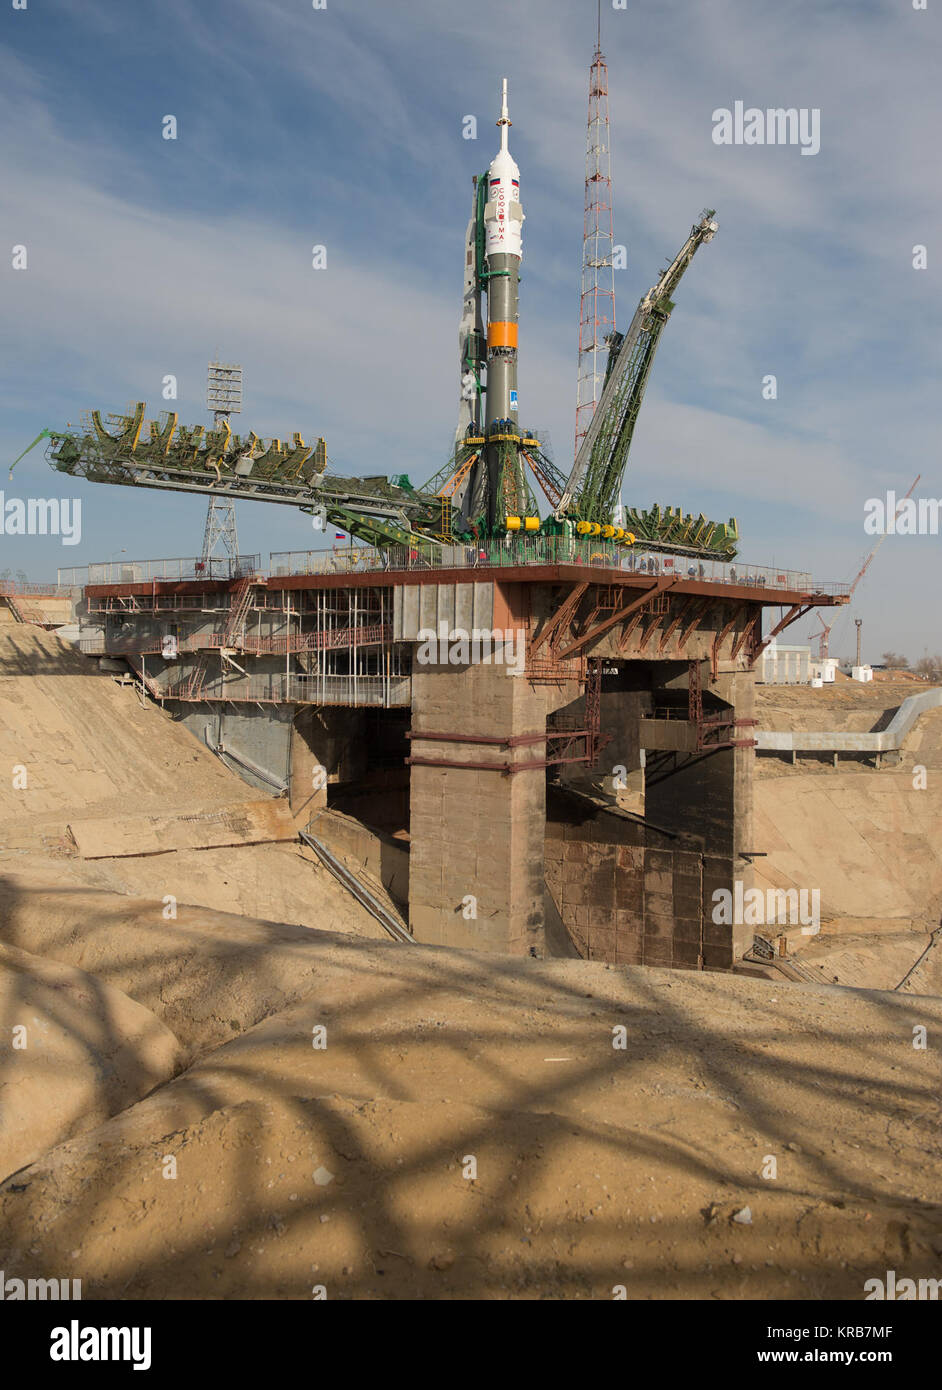 The Soyuz rocket is seen on its launch pad shortly after being lifted into its upright position on Tuesday March - Stock Image